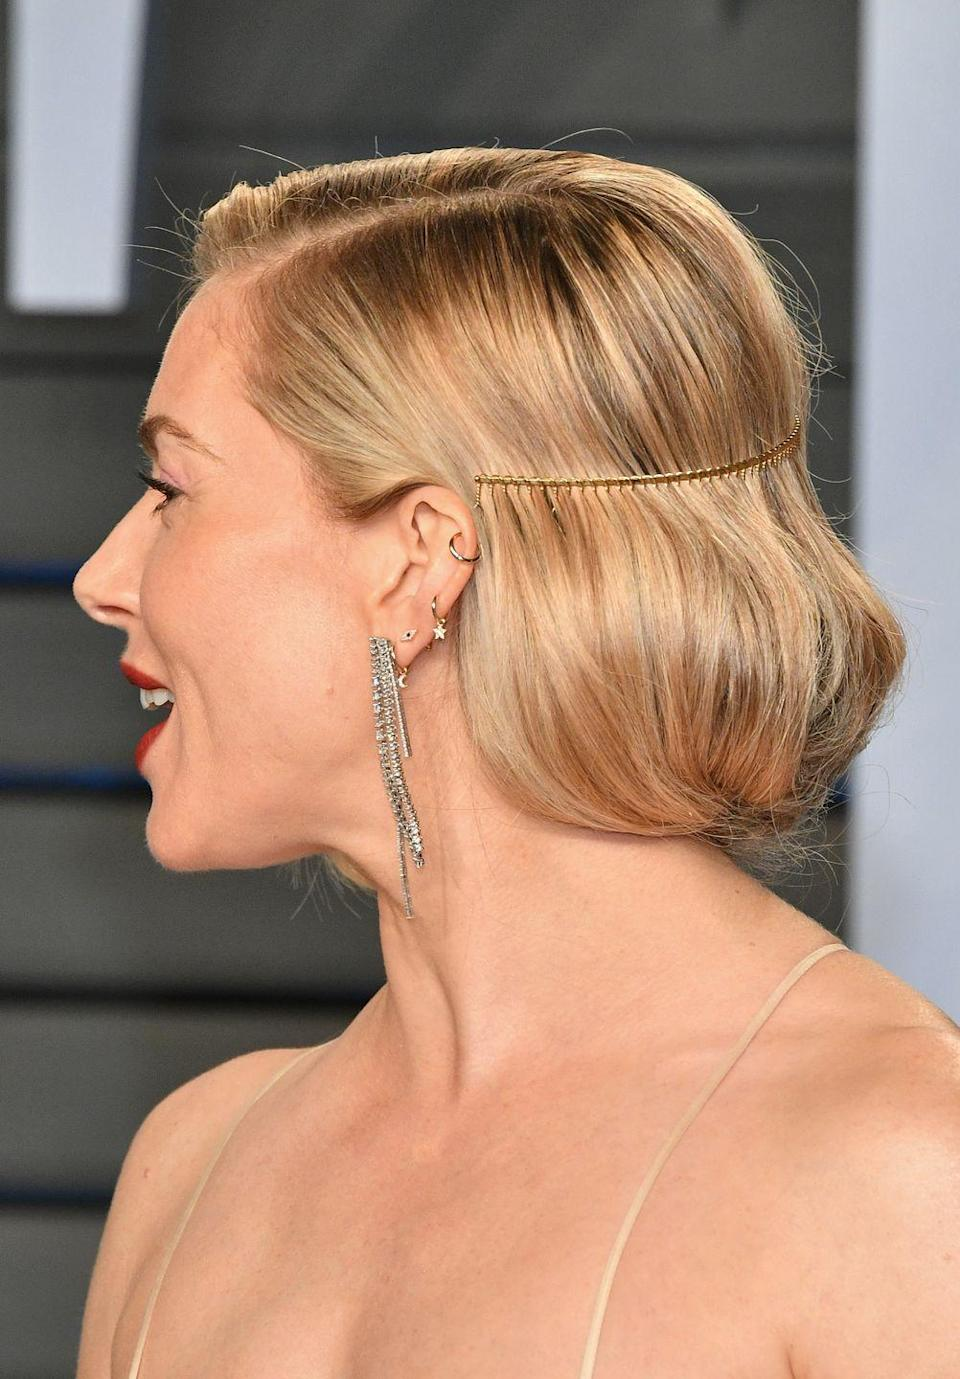 <p>To offset her 1920s-styled hair, Sienna matches diamond drop earrings with a helix gold hoop with a stylish array of modern, dainty spiritual symbols. Beaut! </p>